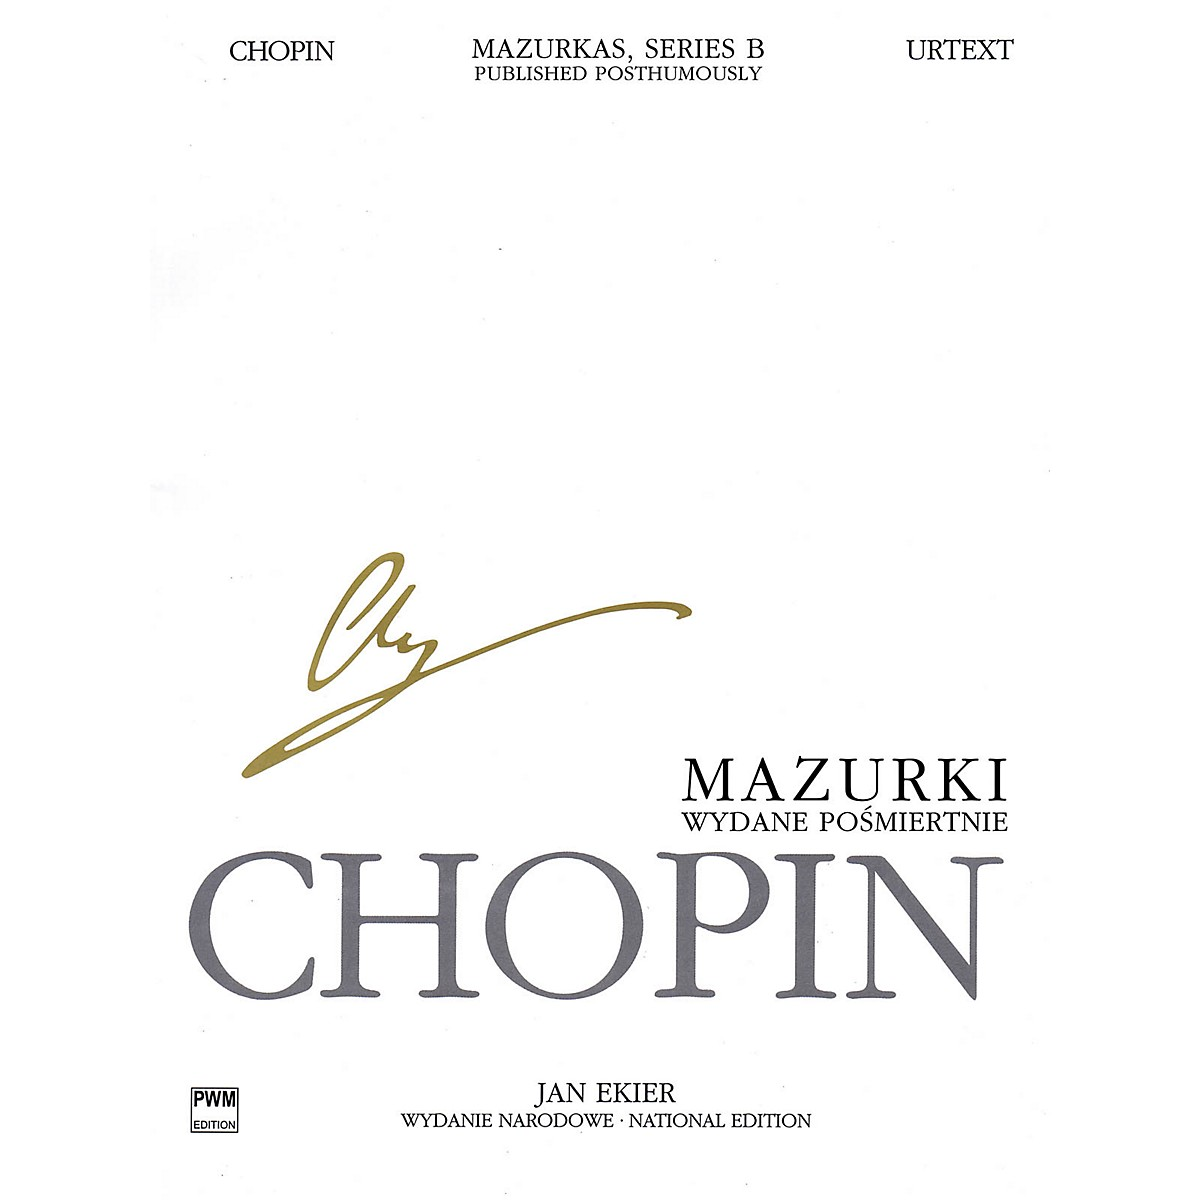 PWM Mazurkas for Piano, Series B, Published Posthumously PWM Composed by Frederic Chopin Edited by Jan Ekier